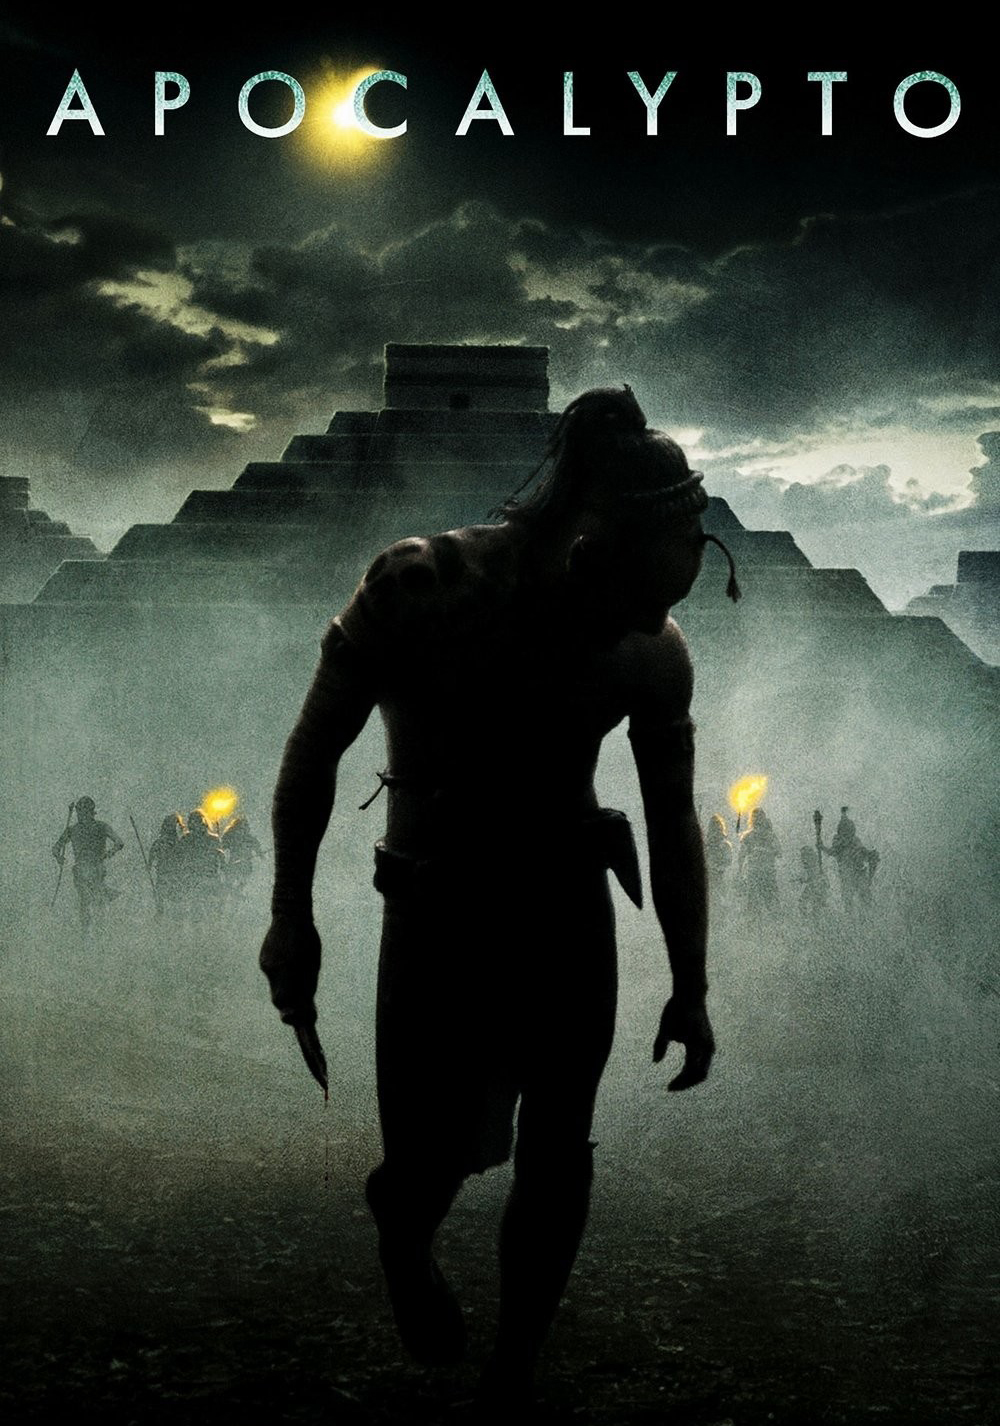 APOCALYPTO (2006) MOVIE TAMIL DUBBED HD